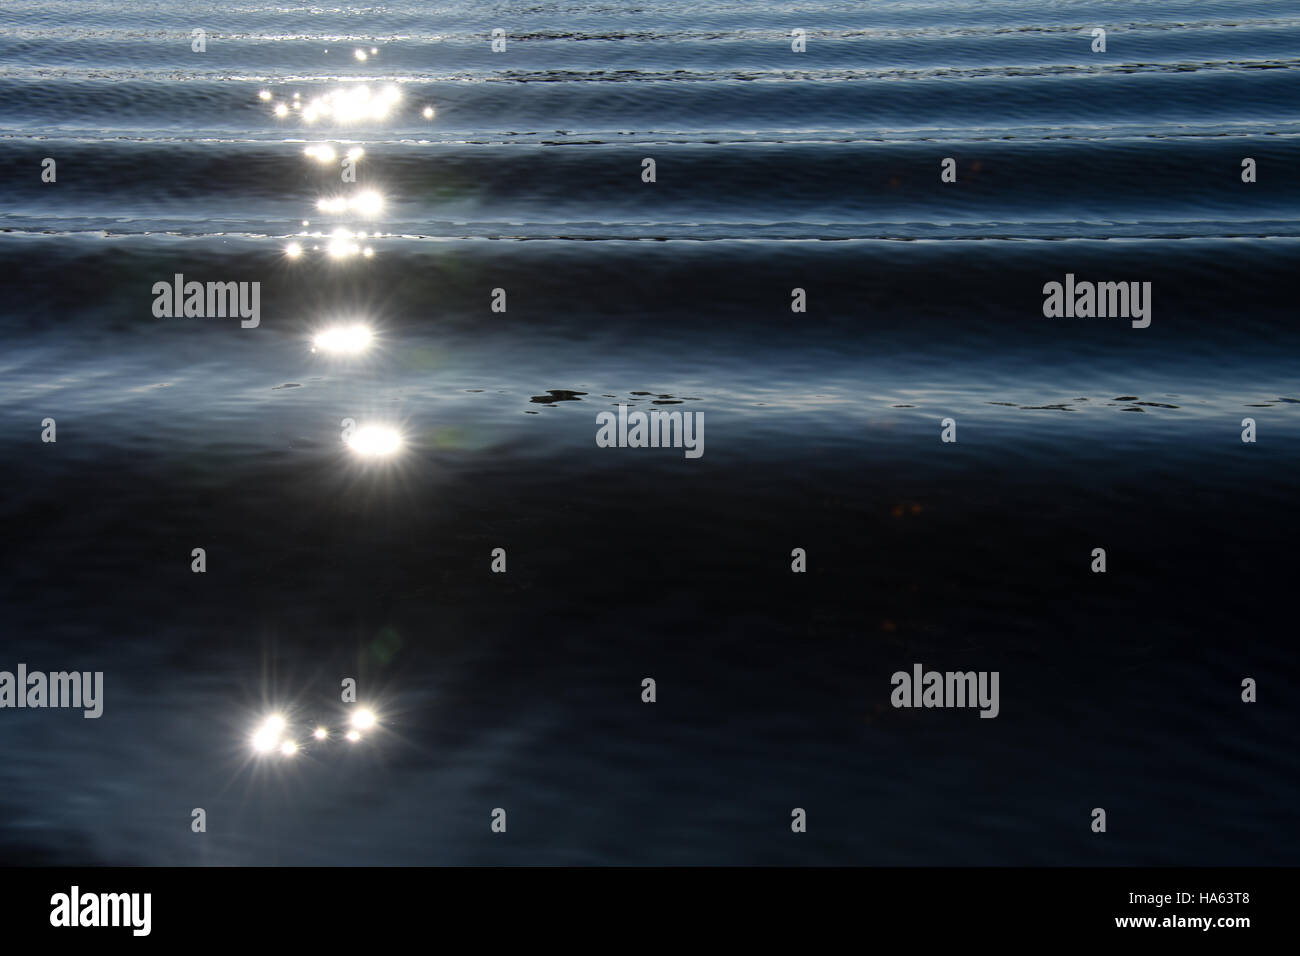 Sunlight making stars on boat wake creating an interesting pattern of waves on blue rippled water. - Stock Image